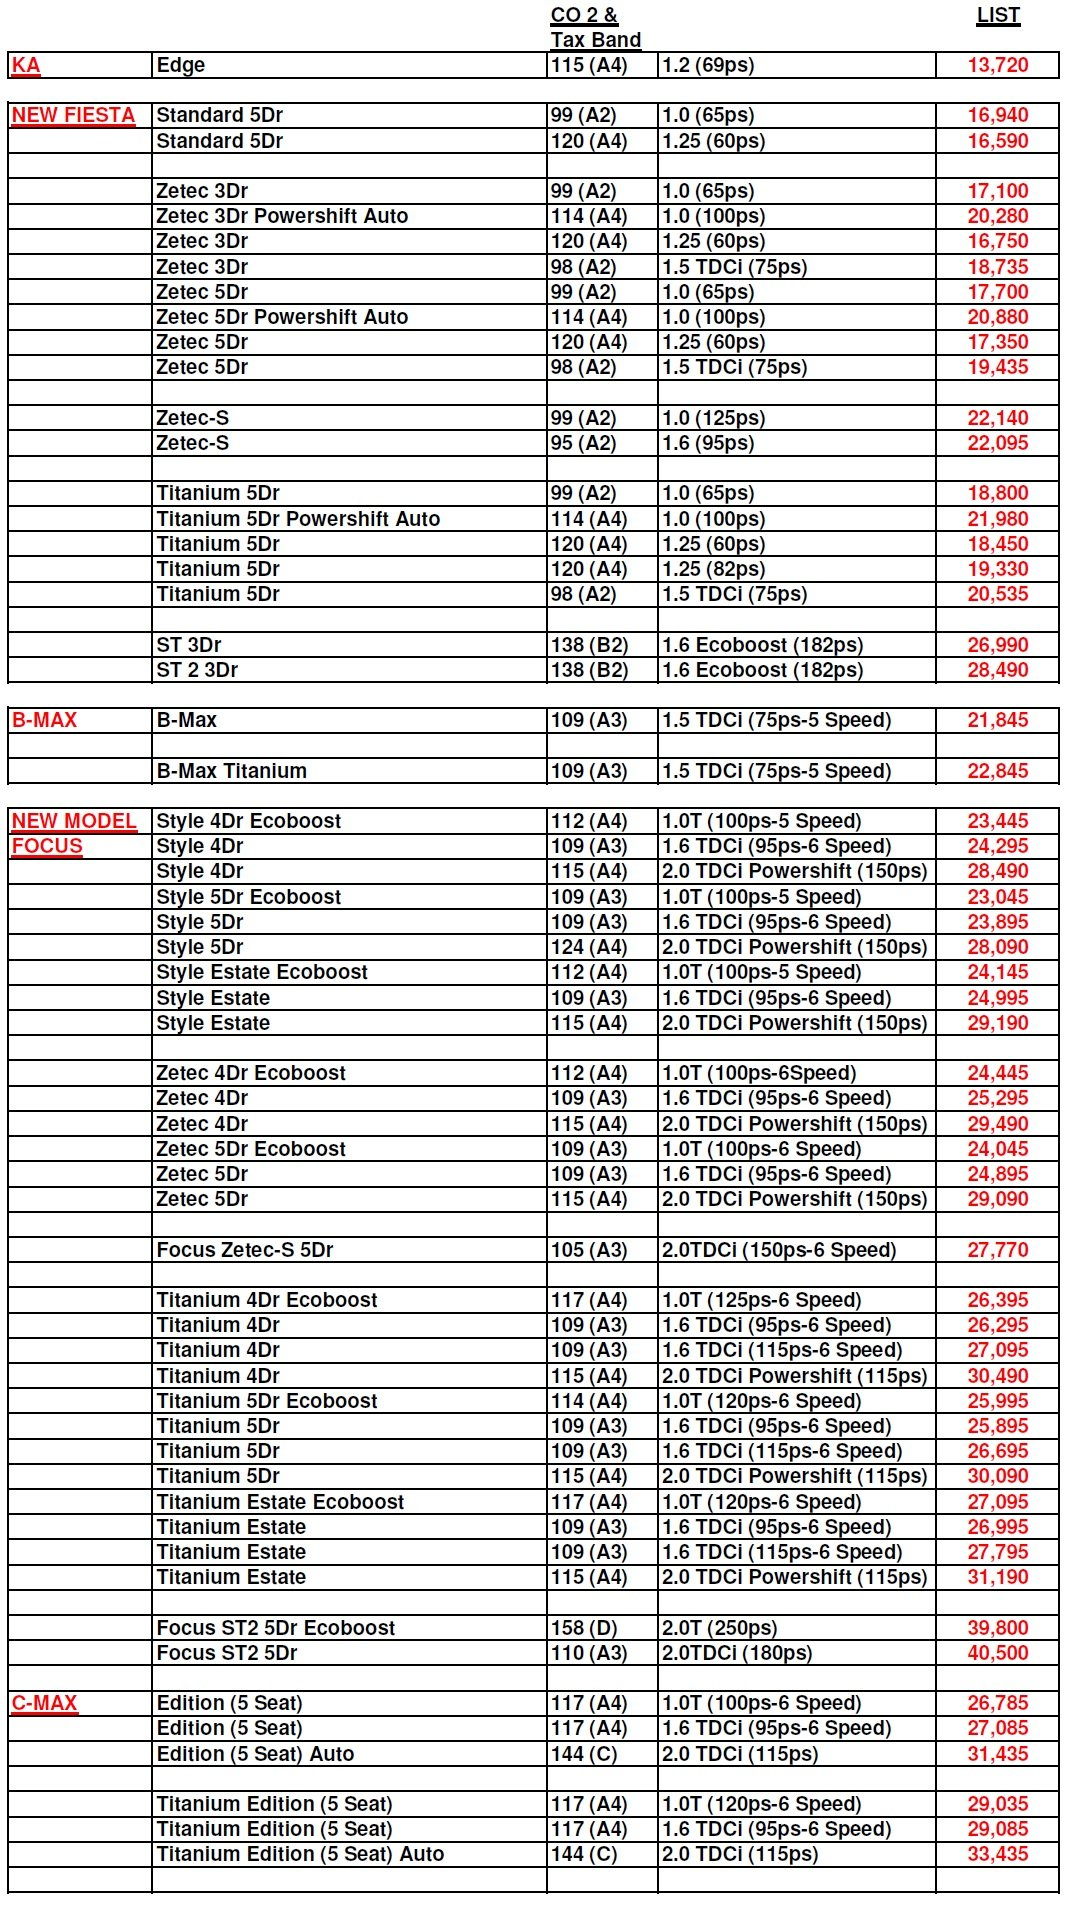 Ford Ecosport Price List 2015 Ford New Car Price List